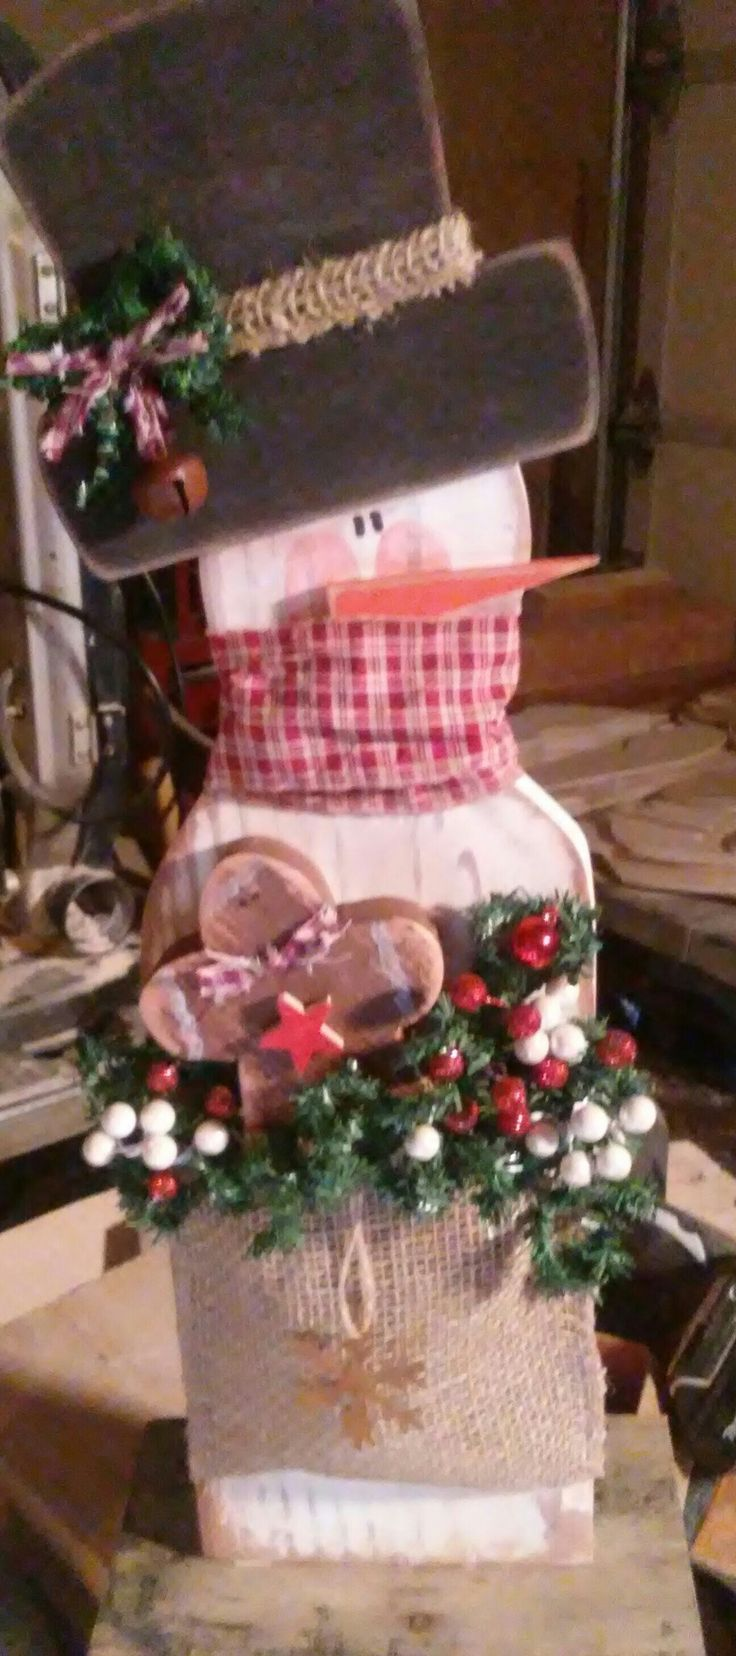 Country primitive snowman with burlap bag filled with goodies. Made from cedar fence post. Shelf sitter. Handmade, craft wood, rustic country primitive decor.